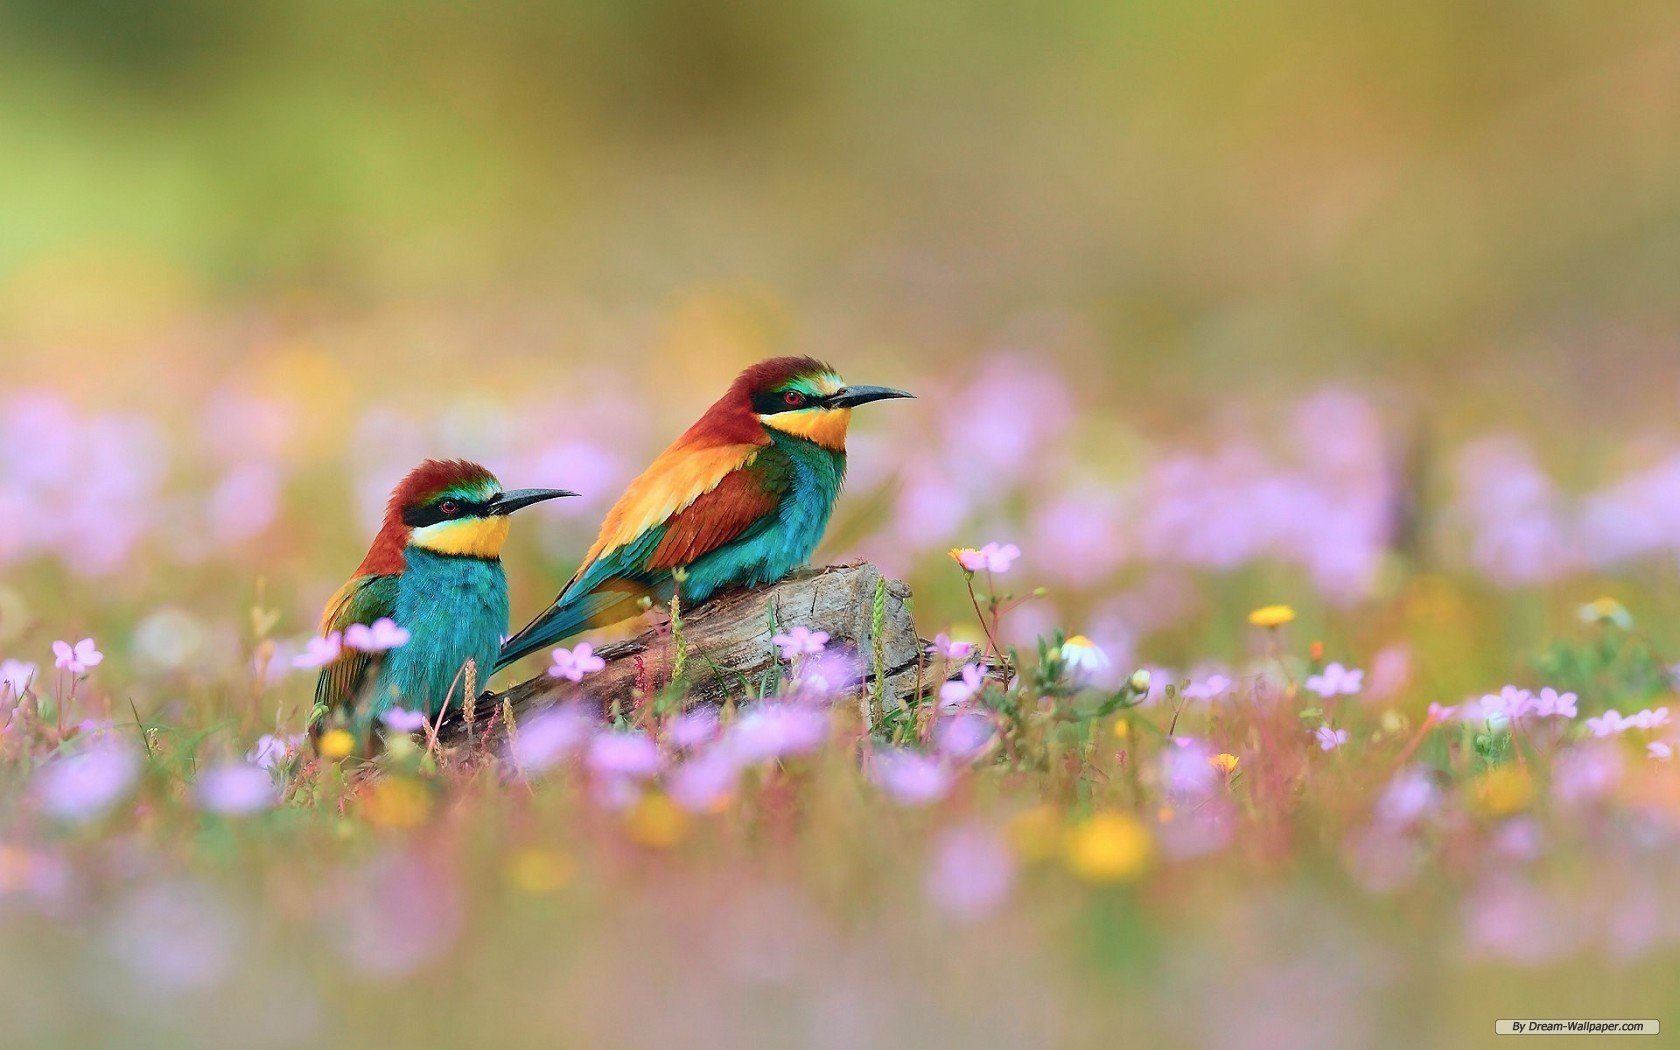 Spring Animal Wallpapers for Laptops 7677 HD Wallpapers Site 1680x1050